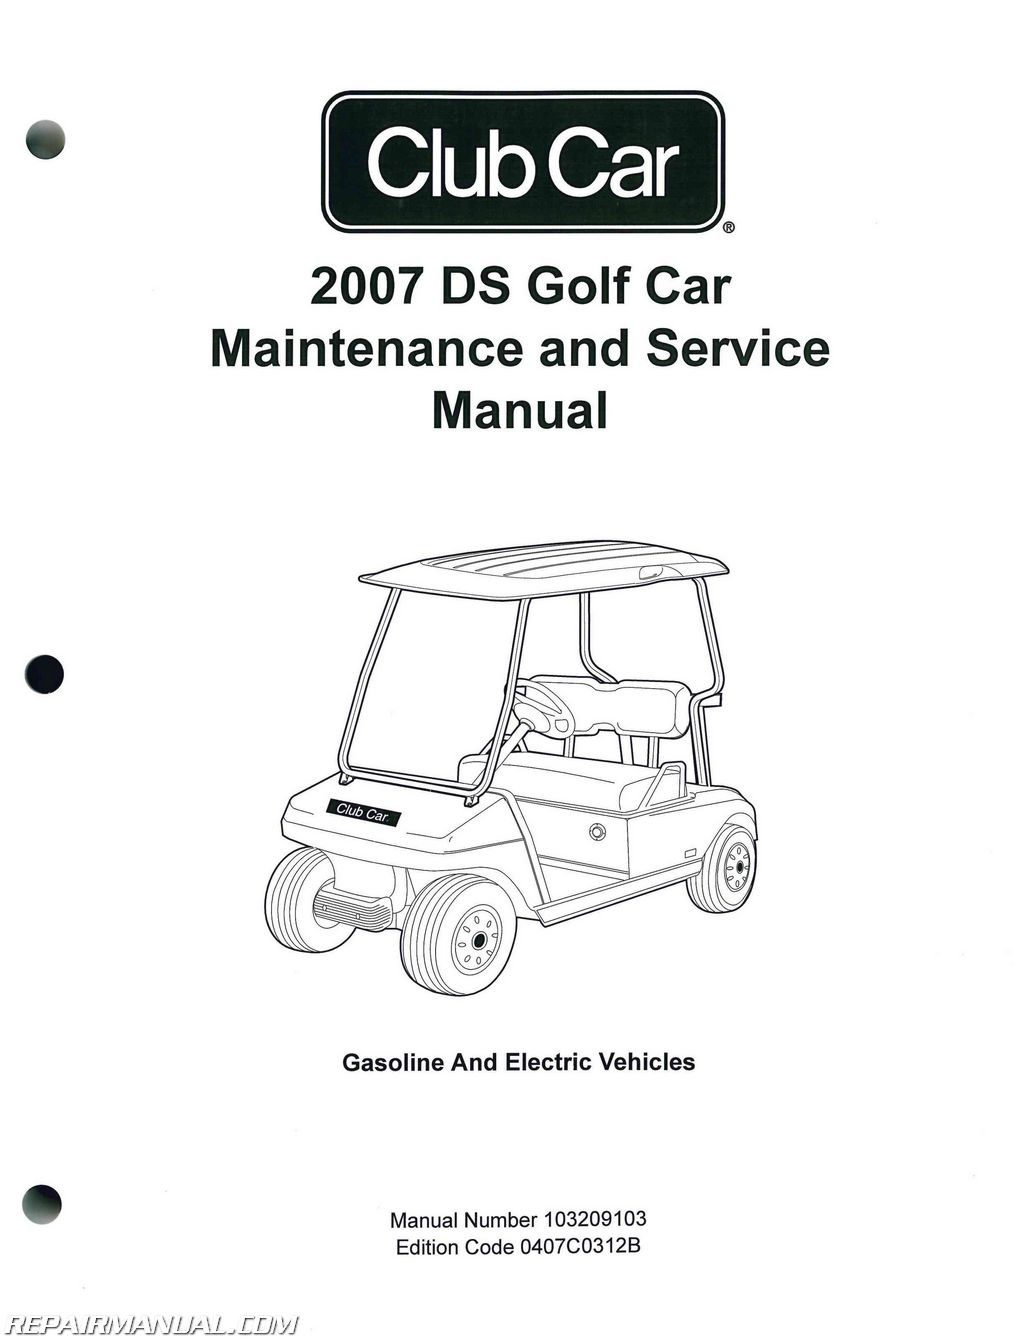 2007 club car ds golf car gas and electric golf cart service manual rh  repairmanual com club car engine parts club cart engine diagram